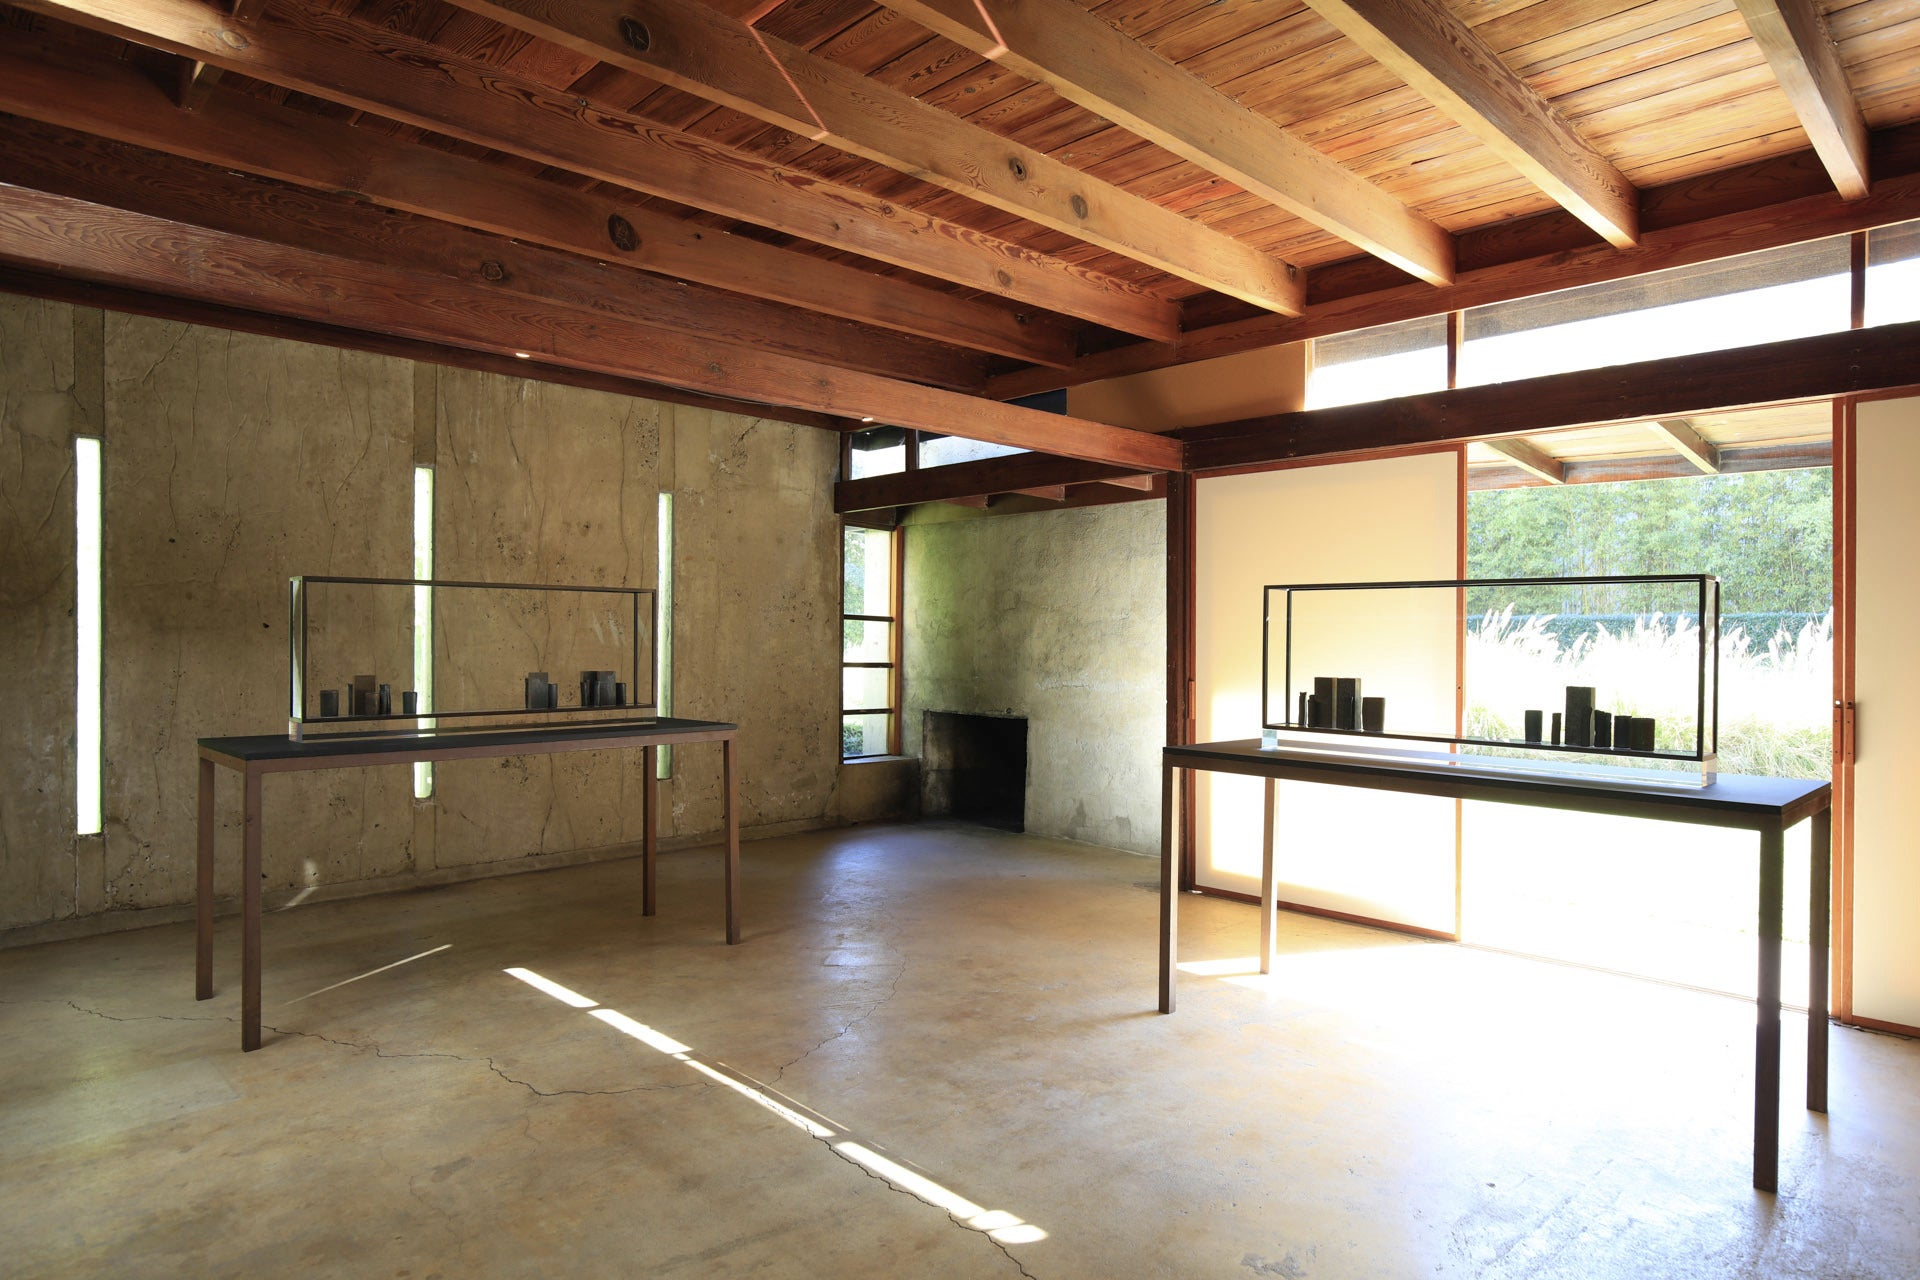 MAK Center for Art & Architecture at the Schindler House